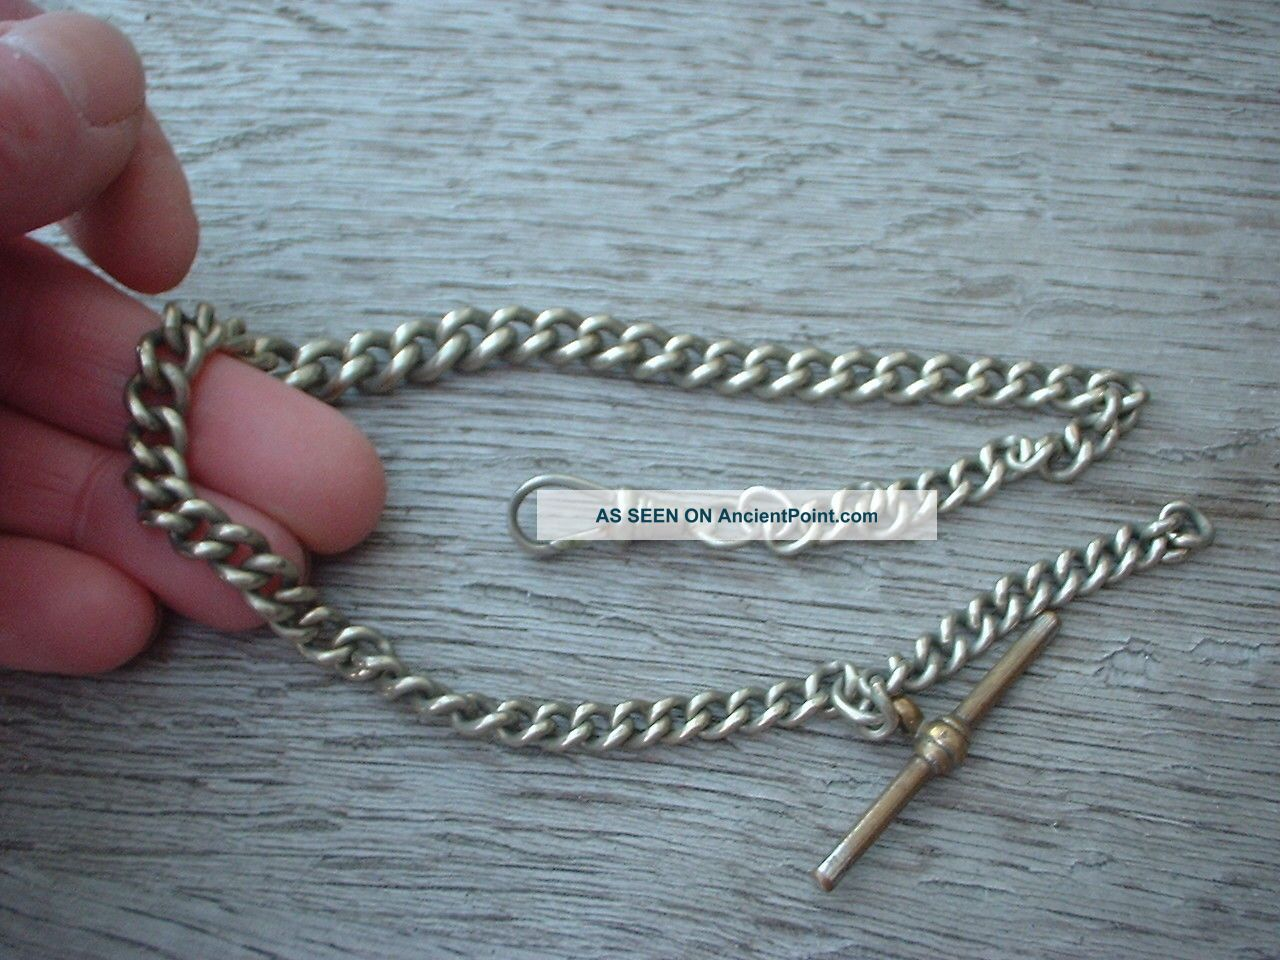 Antique Vintage Albert Pocket Fob Watch Chain Silver Plated With T Bar & Chain Pocket Watches/Chains/Fobs photo